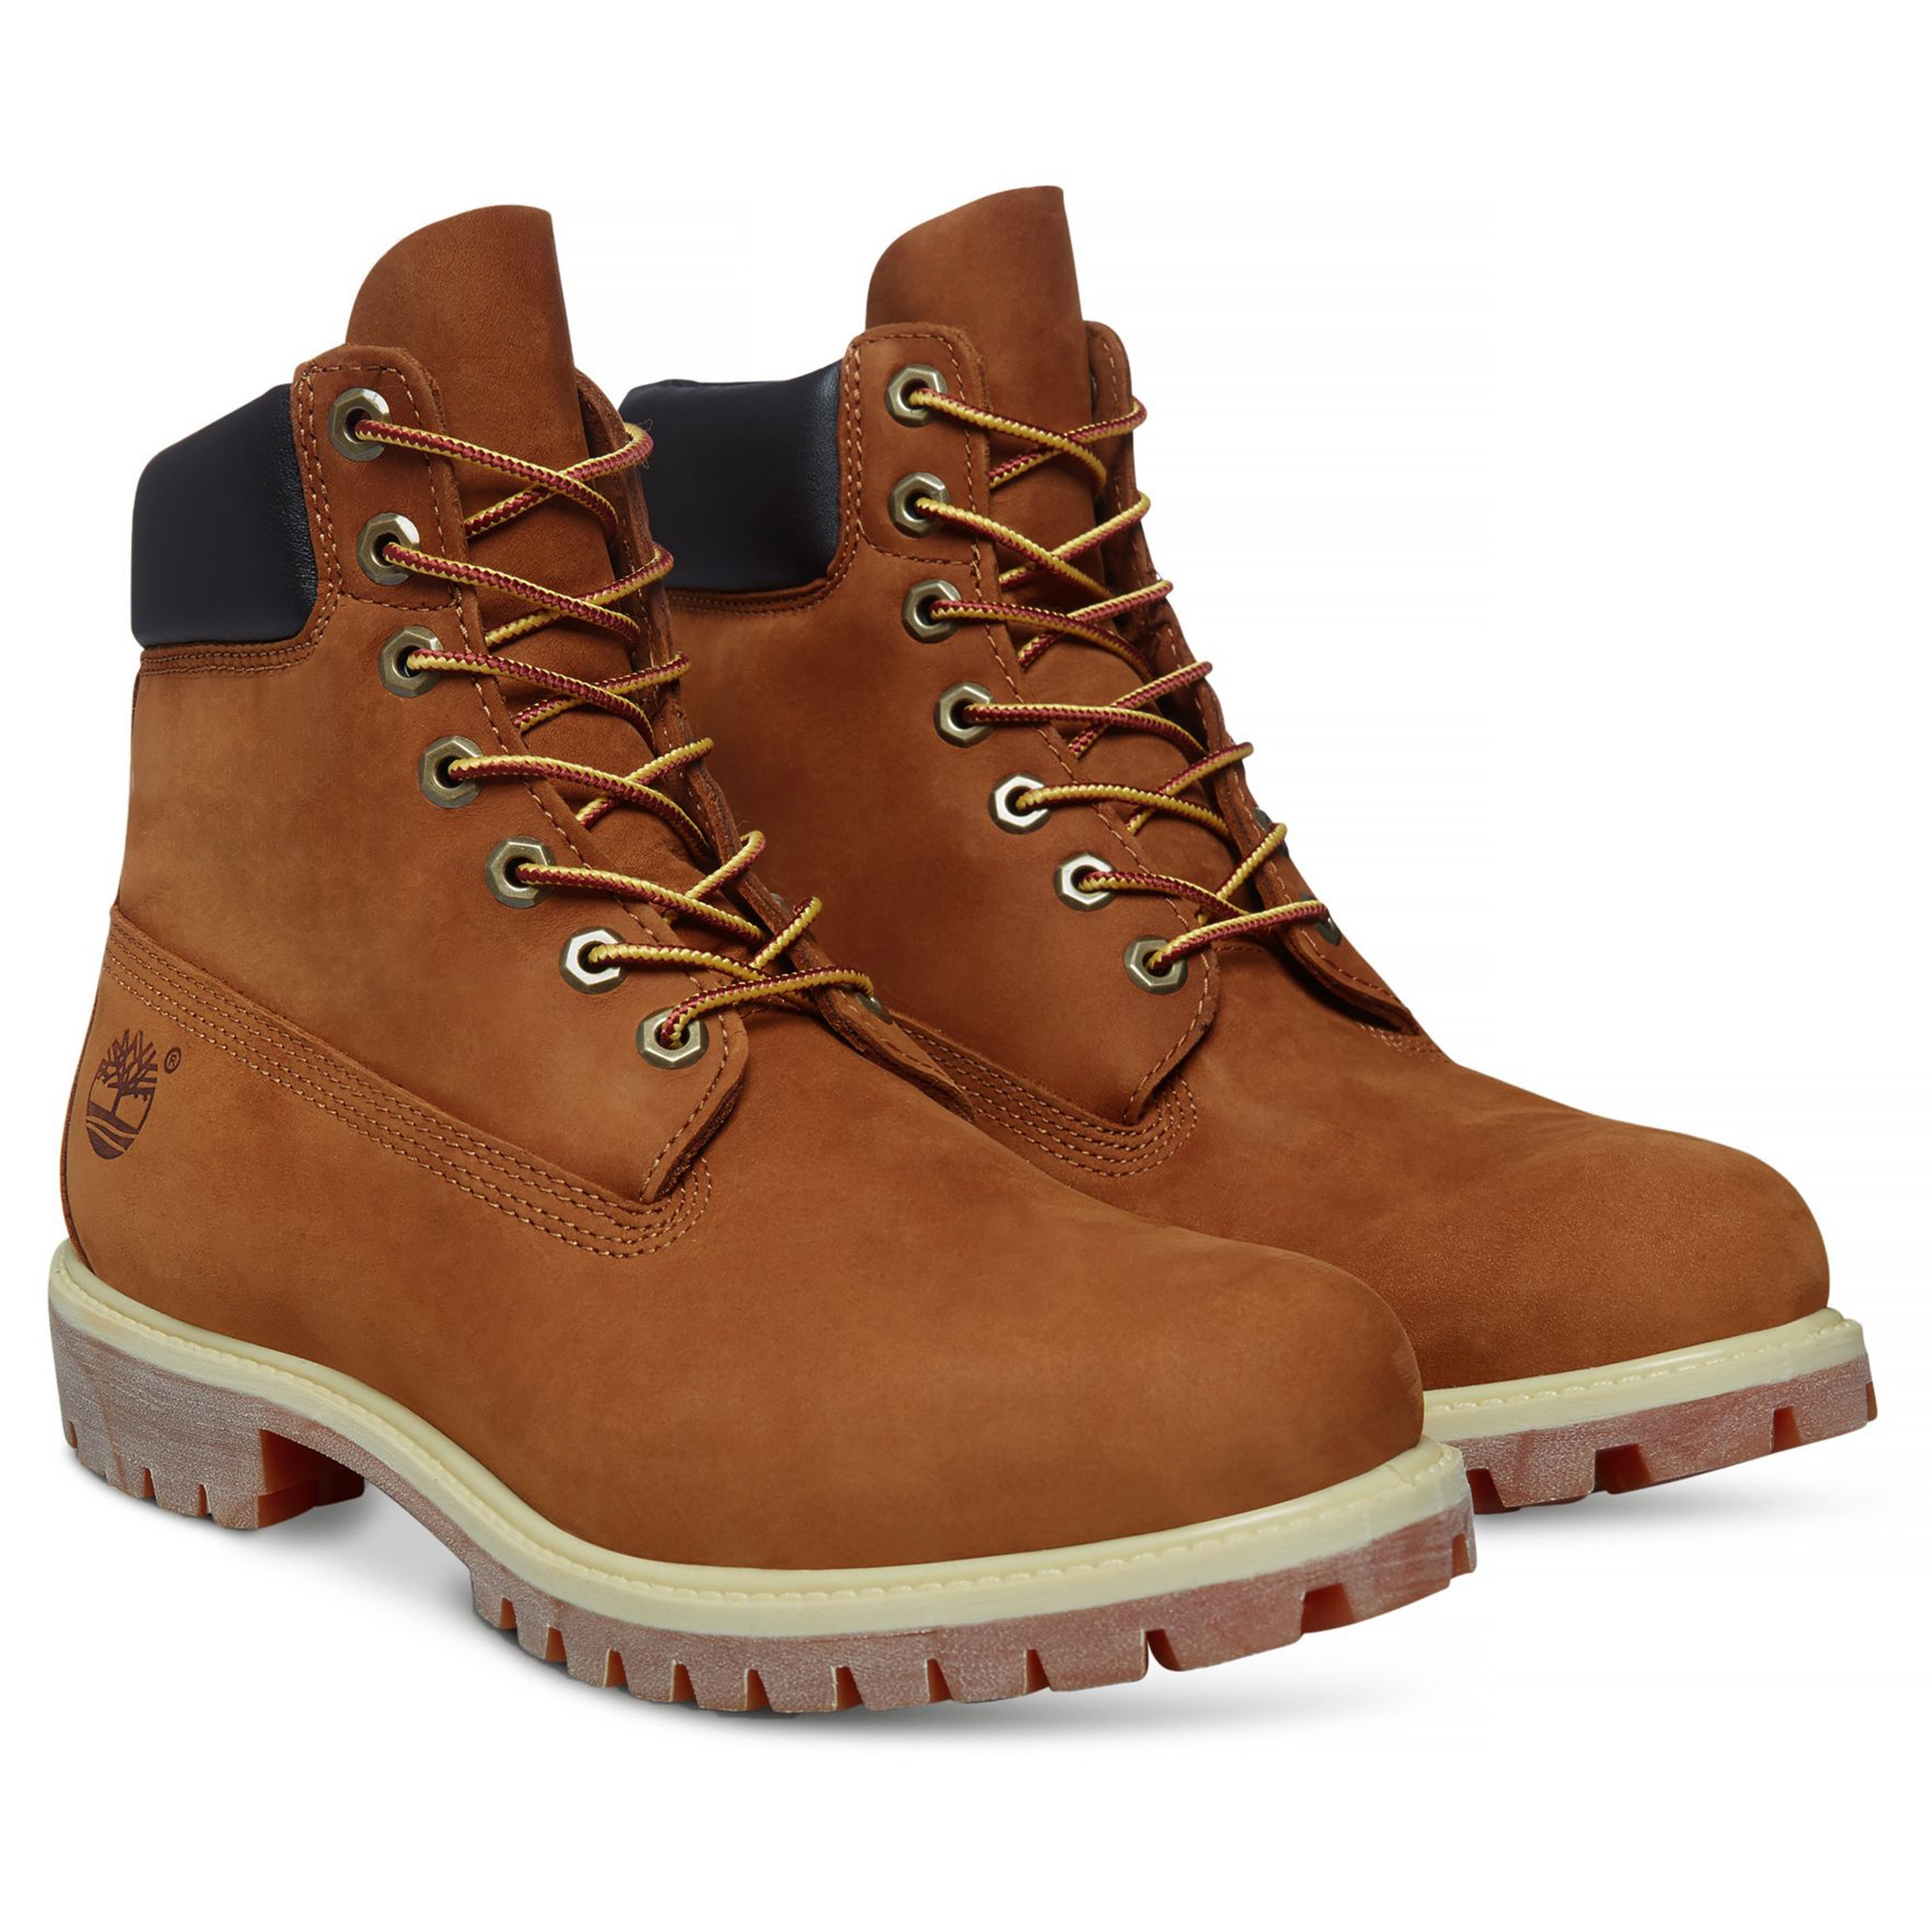 f0b333caf776 Timberland Mens Premium 6 Inch Leather High Boots Boots Rust Orange ...